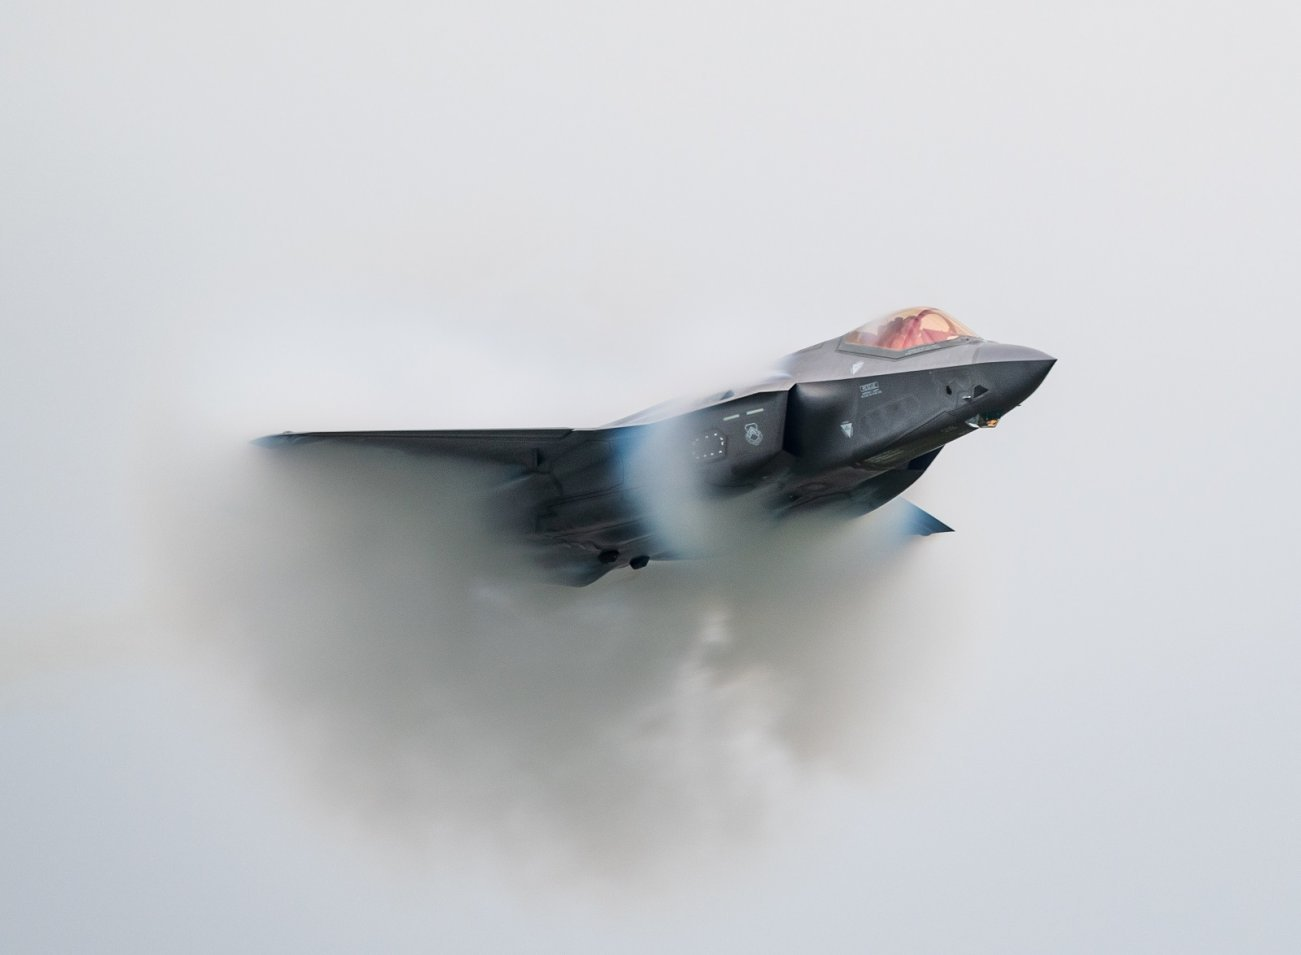 Could Turkey Lose the F-35 Stealth Fighter and Pass on Russia's Su-57?